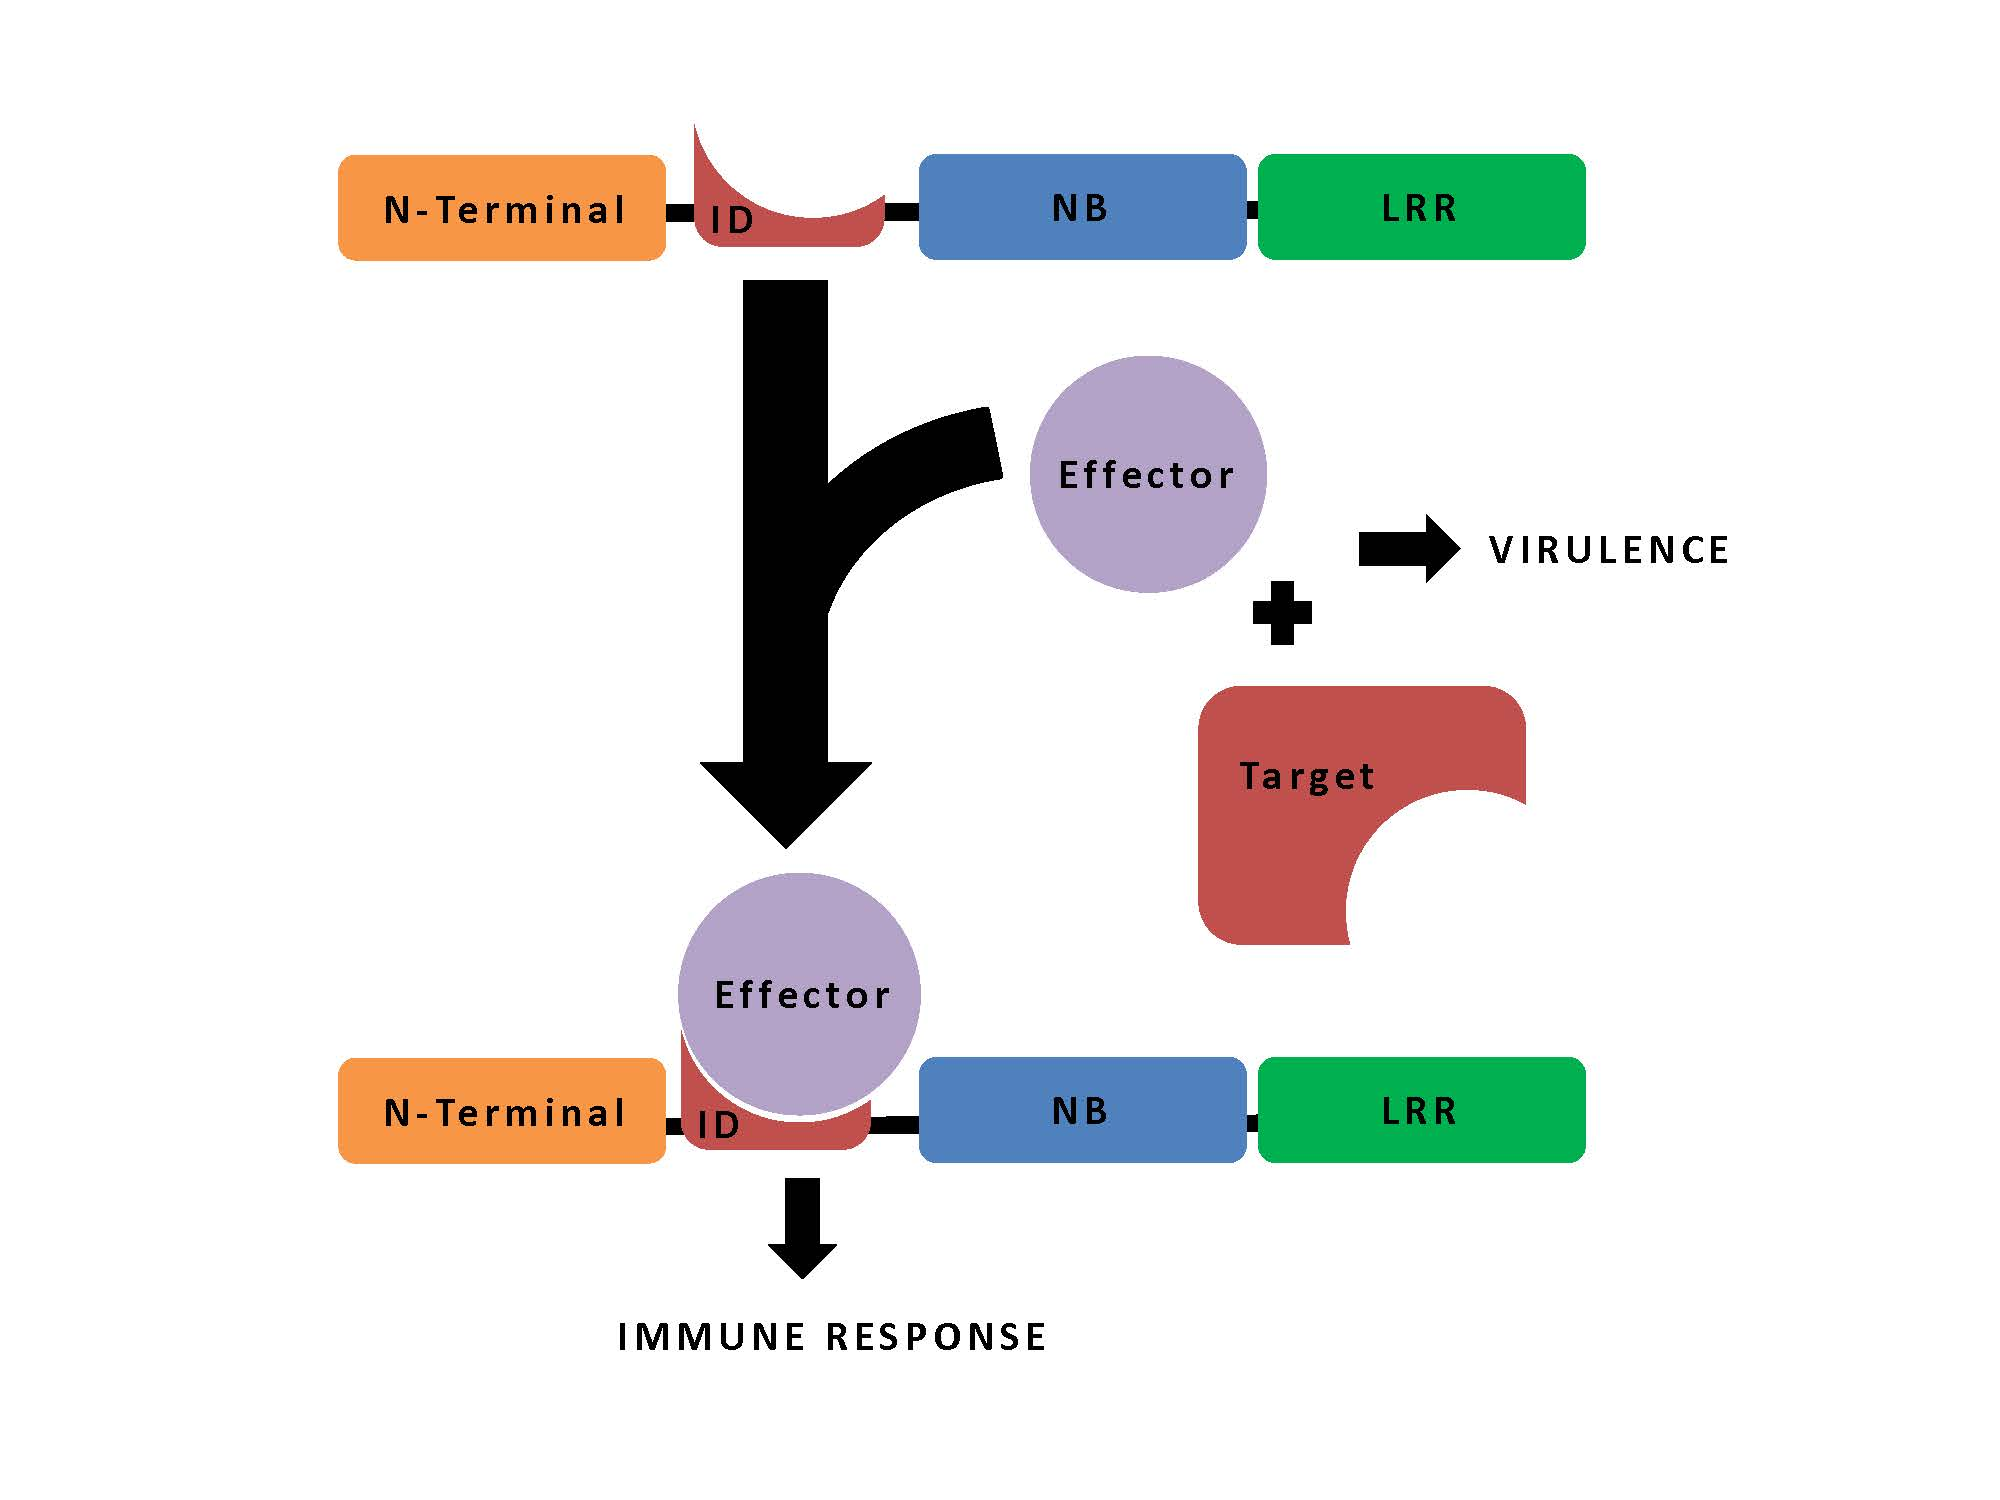 A schematic of NLR-ID mediated immunity.